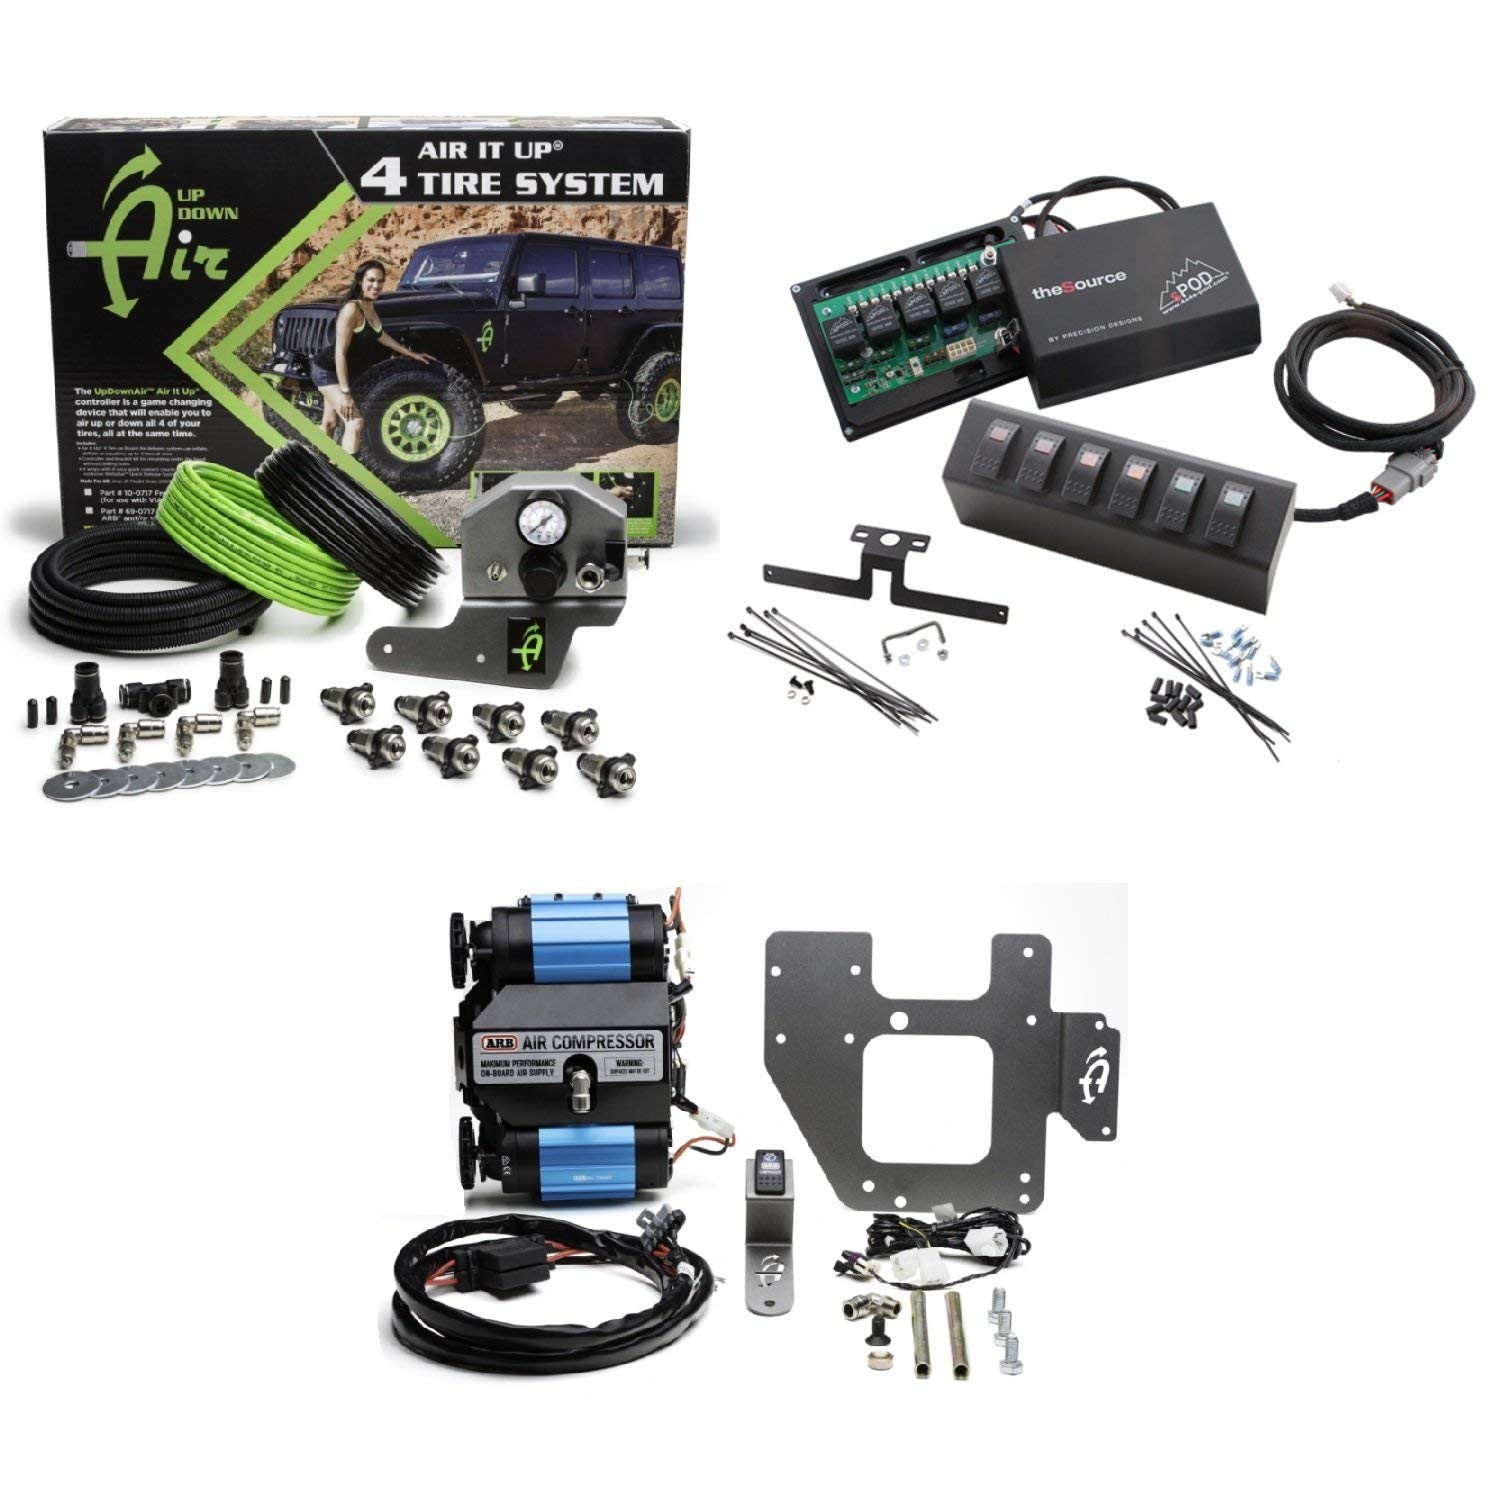 Up Down Air 22-7810/69-0717 Air It Up 4 Tire On Board Air Delivery w/ARB CKMTA12 Compressor & sPOD 600-07 6 Switch 2 Red/Amber/Green Source System for 07-08 Wrangler JK